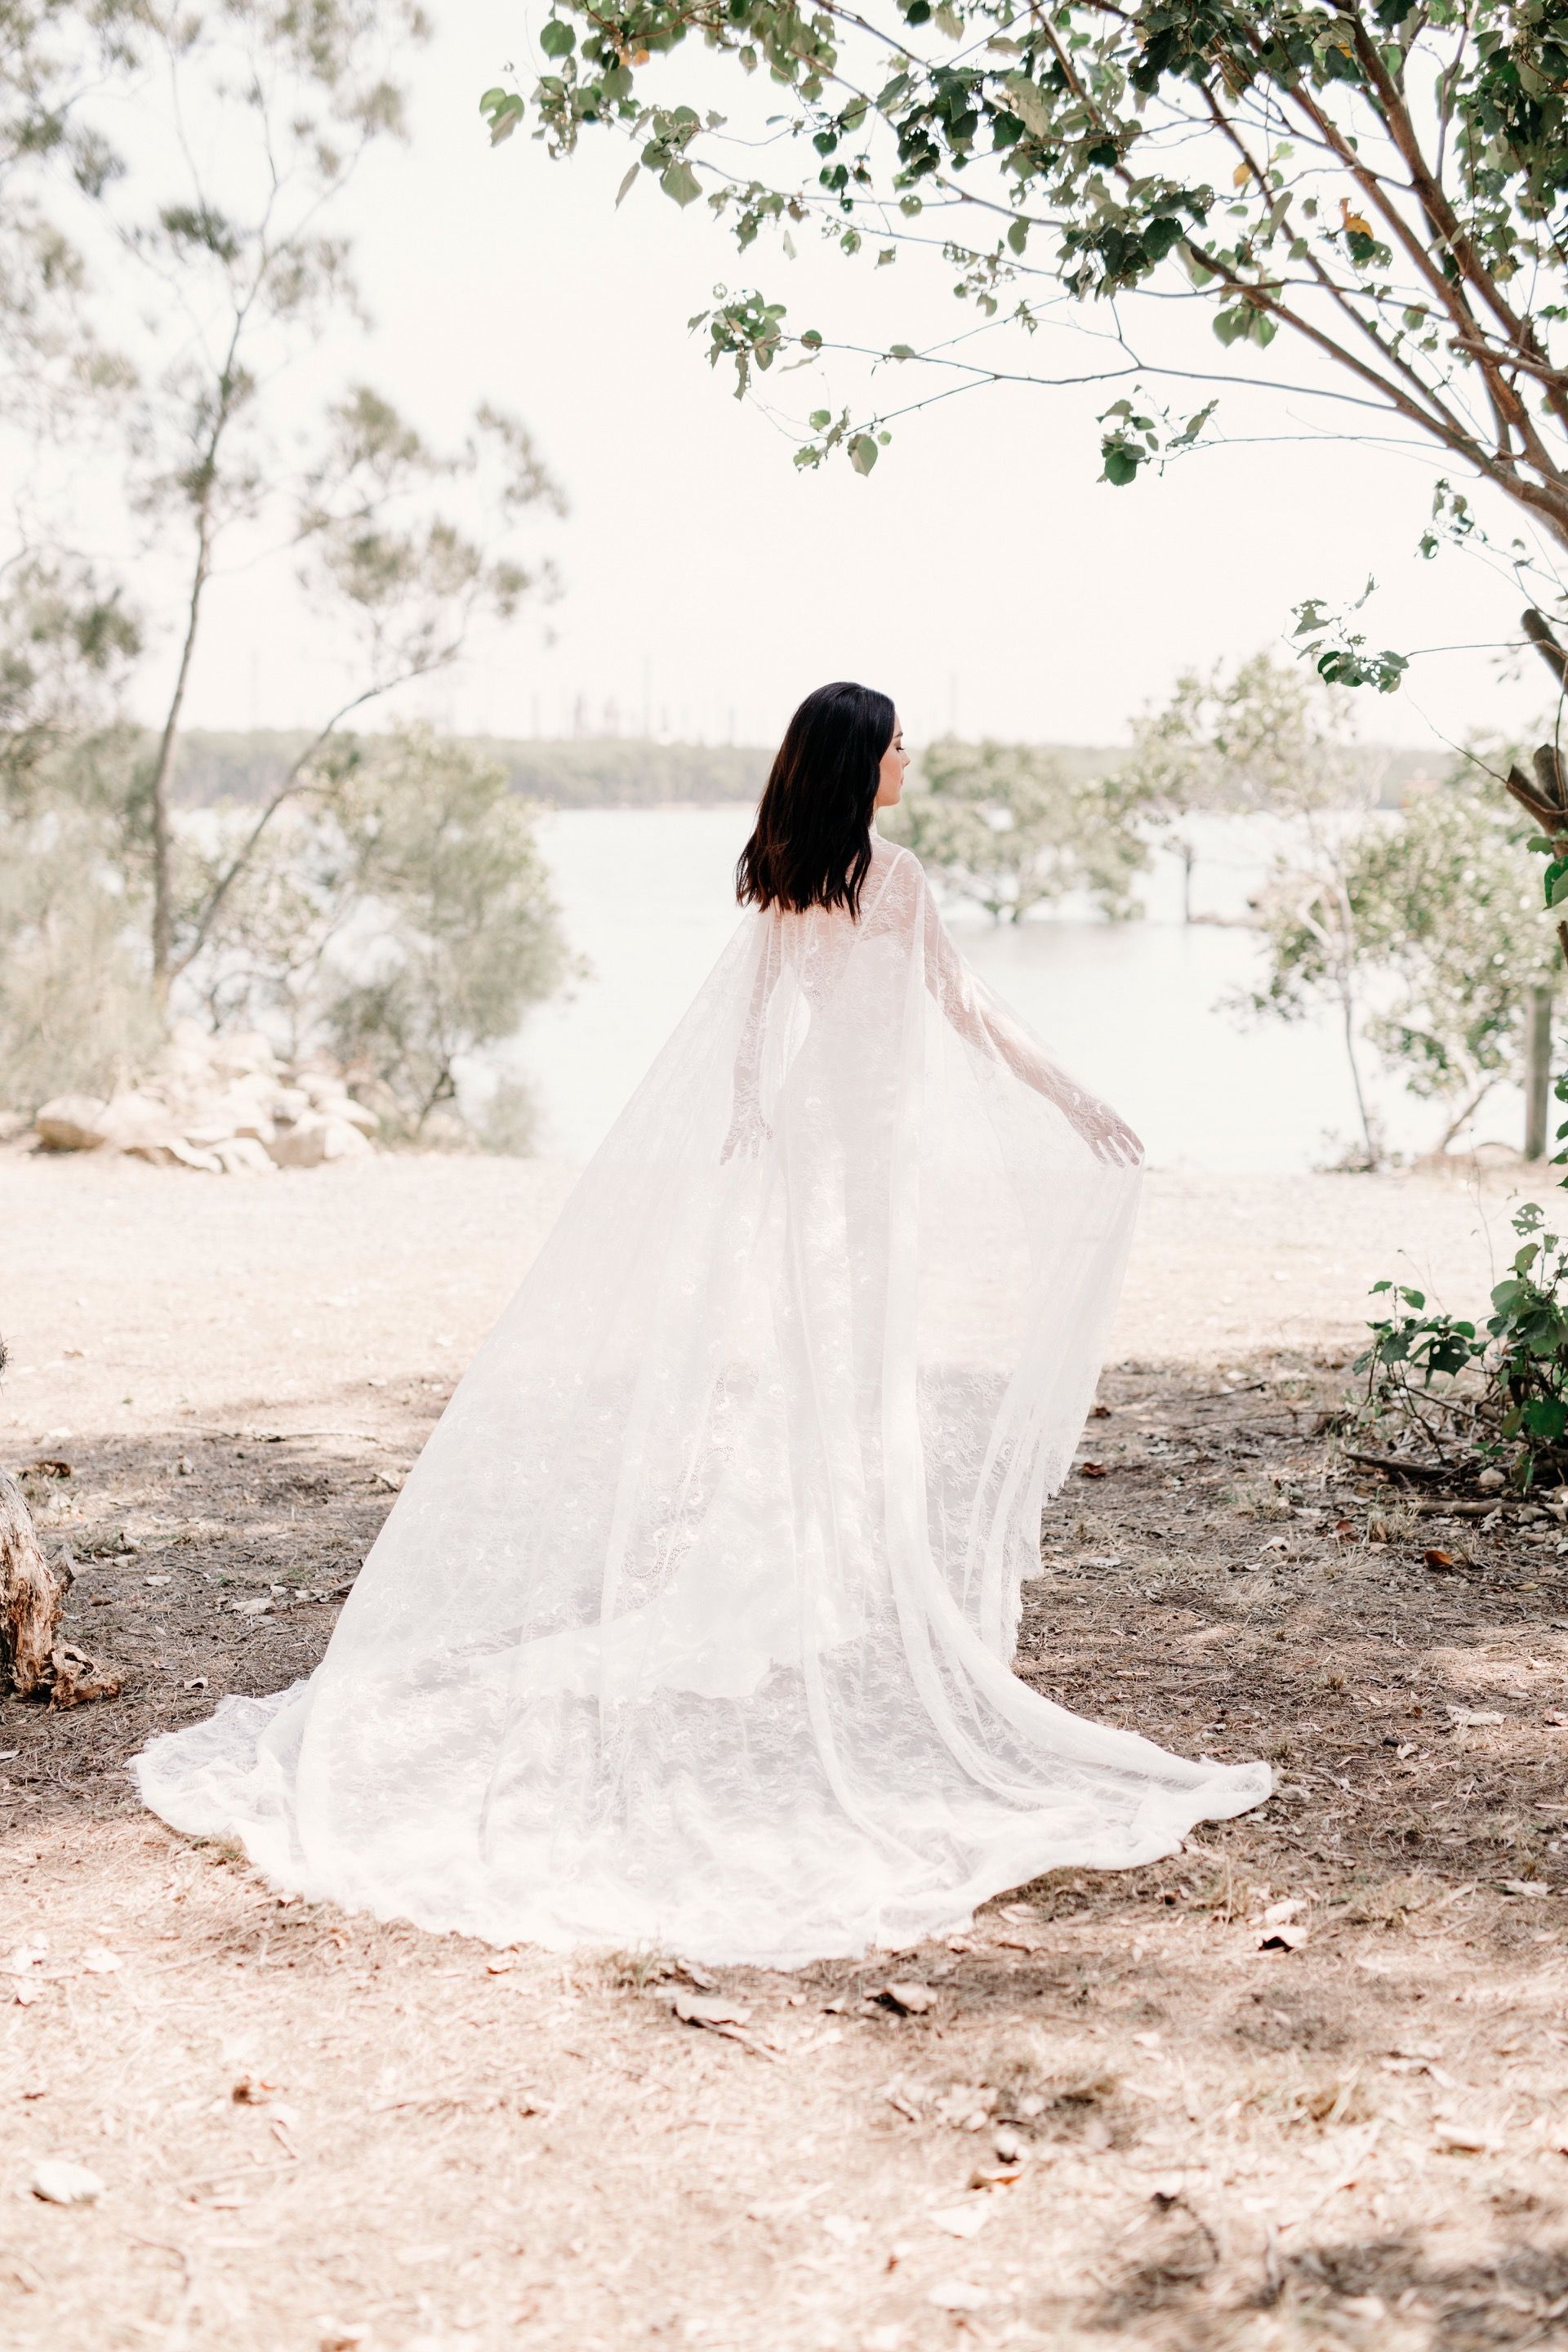 Goddess by nature australianmade bridesmaid and wedding dresses